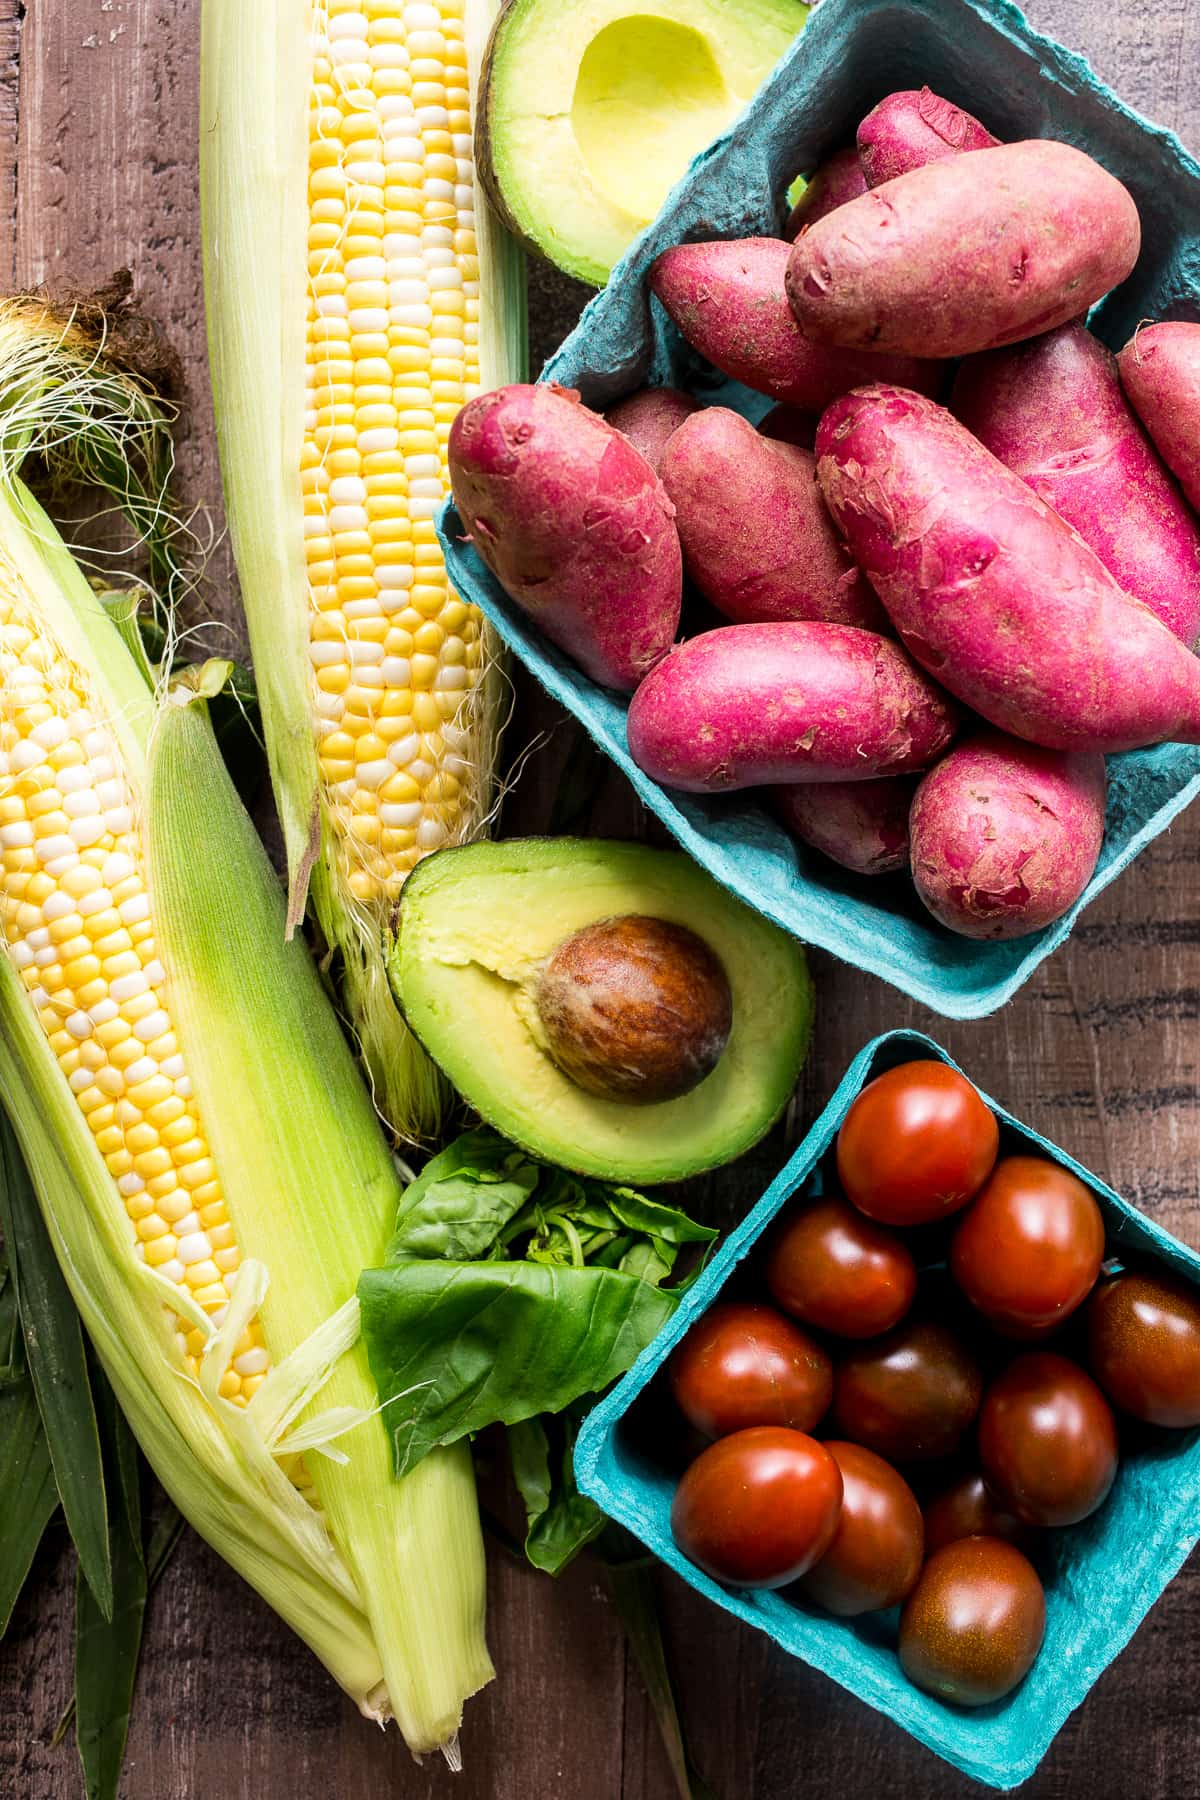 figure we've got tomatoes and avocado and corn (do you consider corn ...